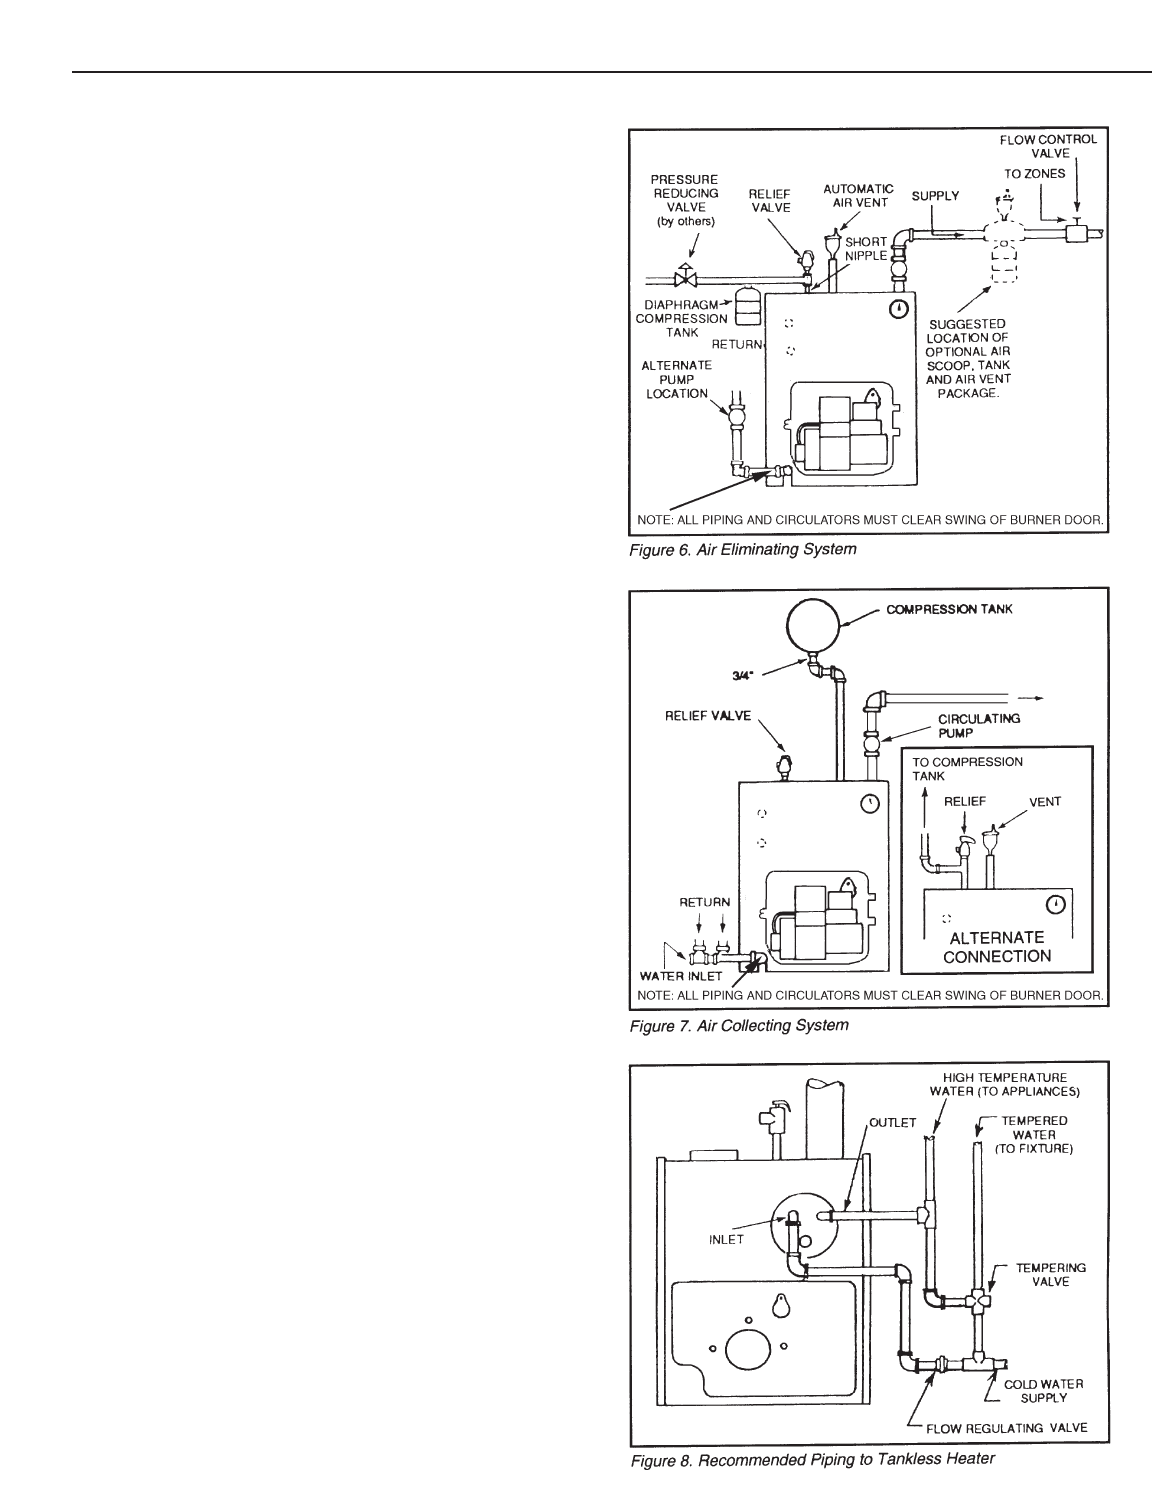 Jandy lite 2 wiring diagramhtml evinrude wiring harness